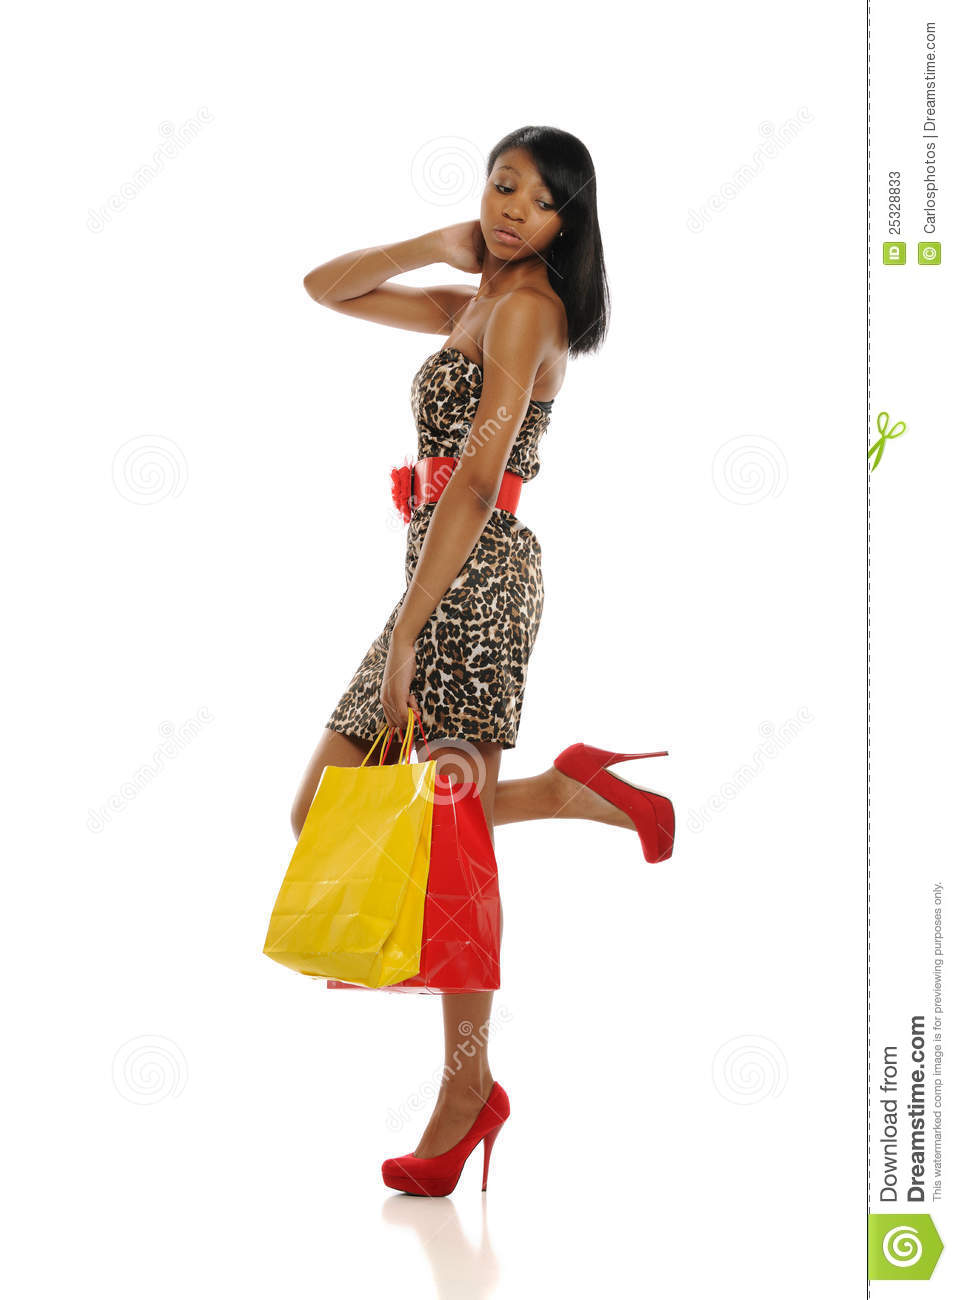 Young Black Woman Shopping Bags African Fashion Dress Images Download